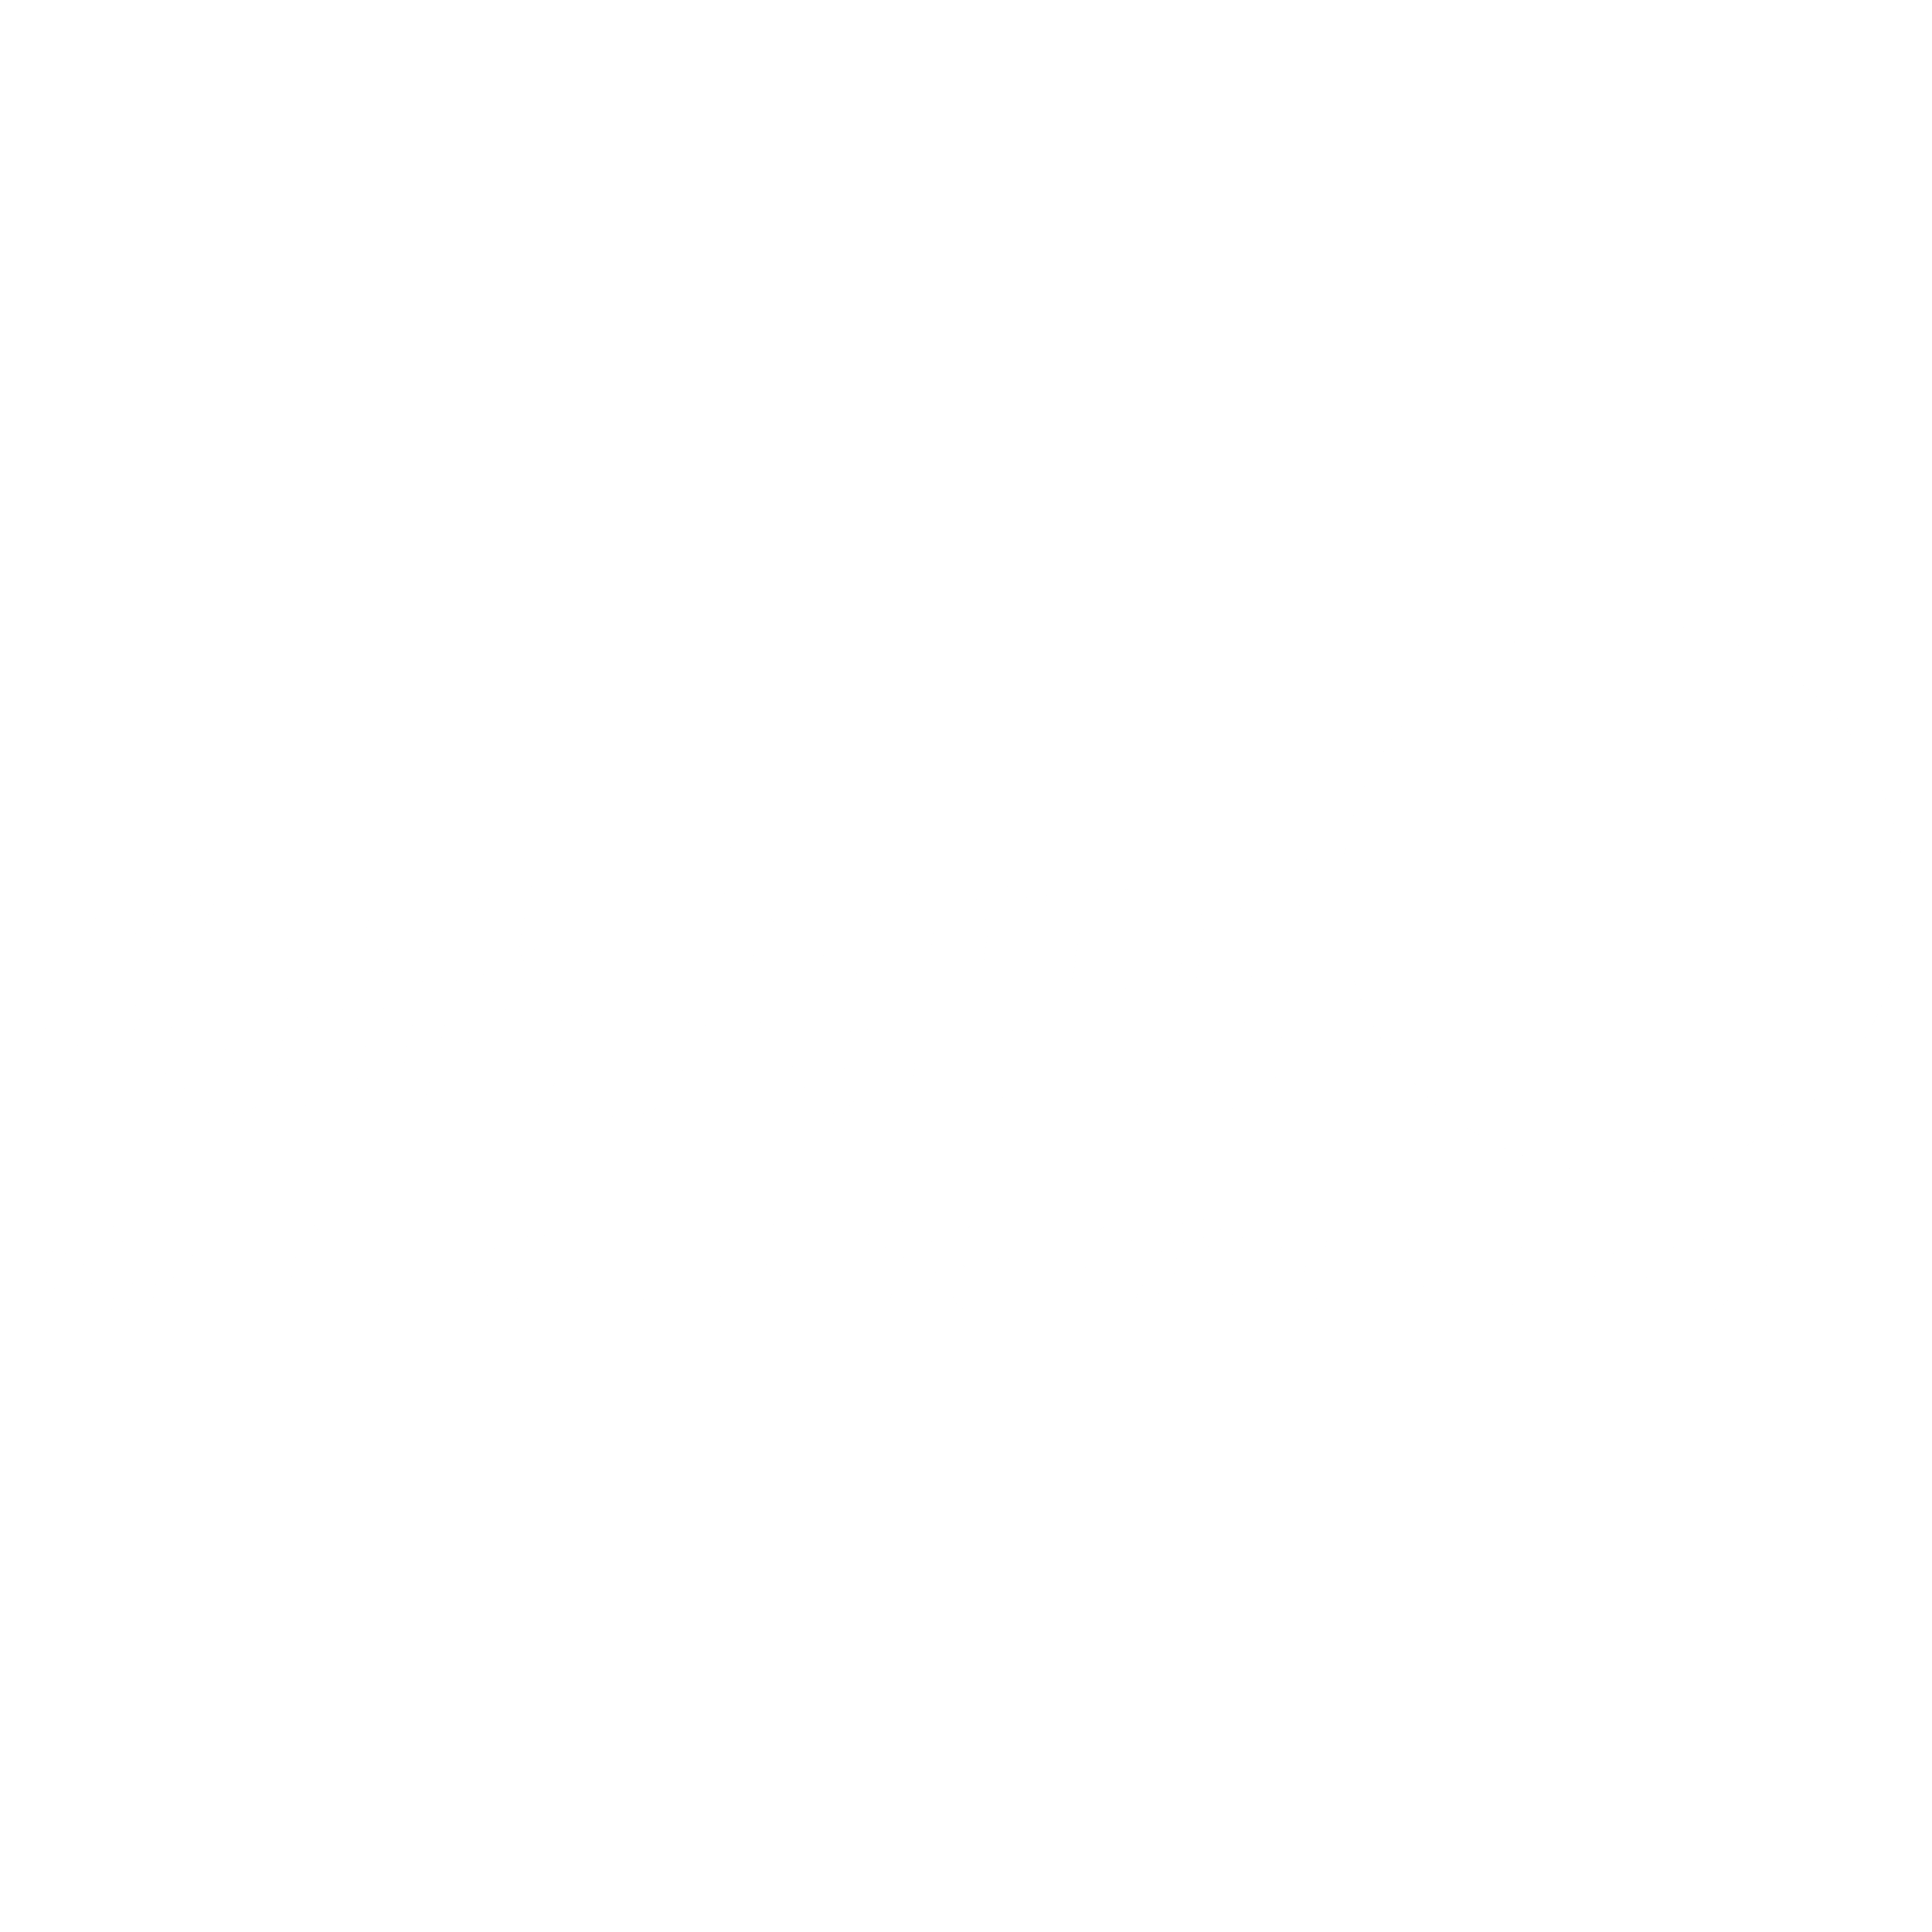 News Channel 7 Logo PNG Transparent & SVG Vector - Freebie Supply